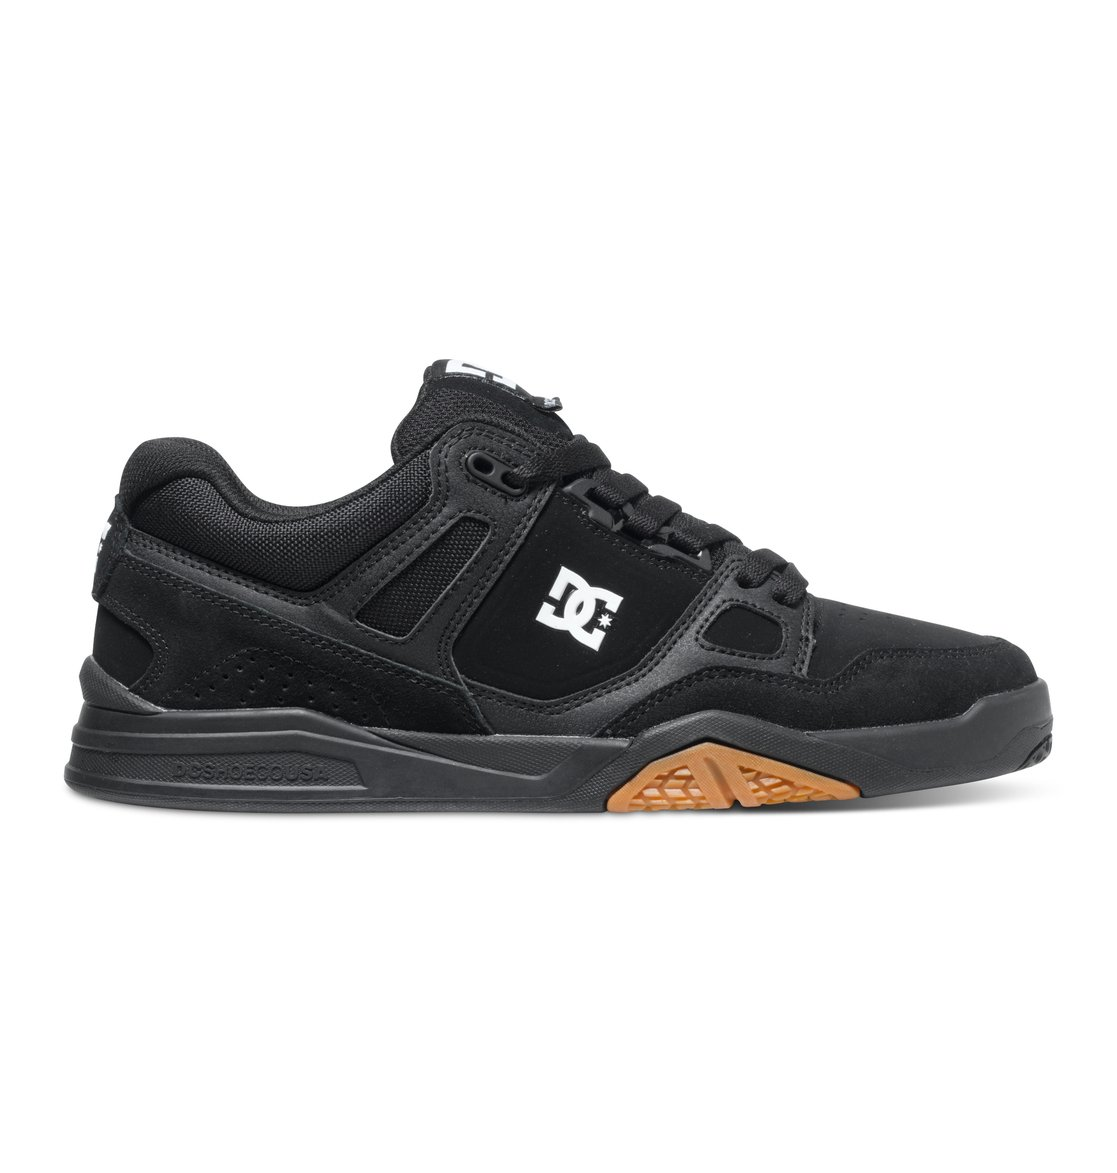 Stag 2 - Dcshoes������ ������� ���� Stag 2 �� DC Shoes. <br>��������������: ������������� ����� ������ ����������, �������������� �� ������ ���������� ������ ������ �����, ������� ���� Heavy Duty � �����, ������� ���� � ������� � ������ ������������, ��������� ������� ���������� ������� DC Pill Pattern. <br>������: ����: ���� / ���������: �������� / �������: ������.<br>